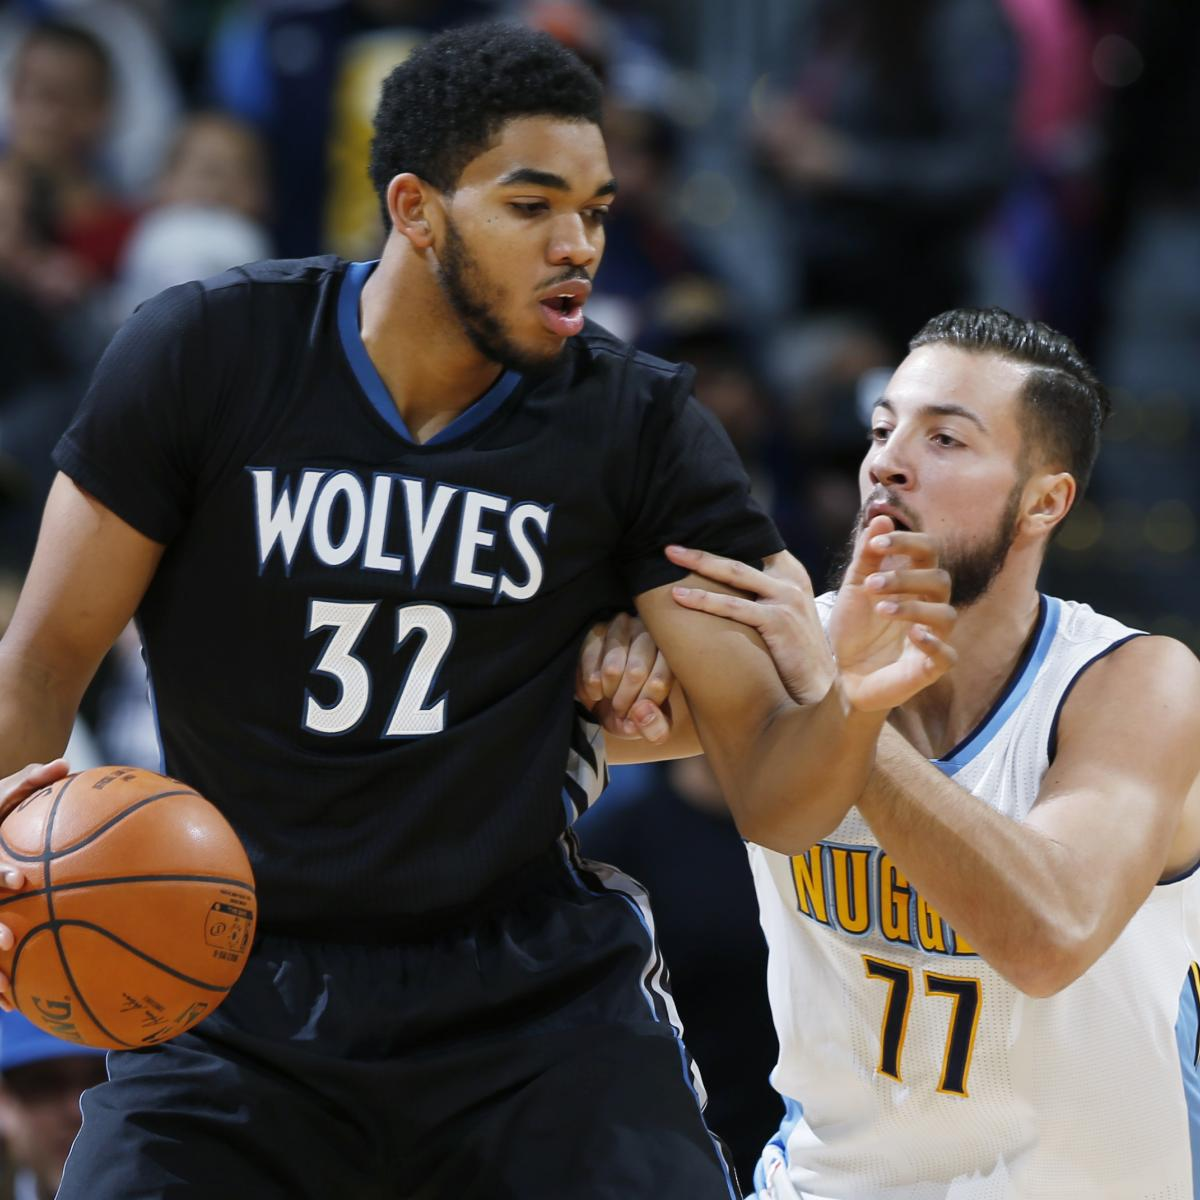 Warriors Timberwolves Full Game Highlights: Timberwolves Vs. Nuggets: Score, Video Highlights And